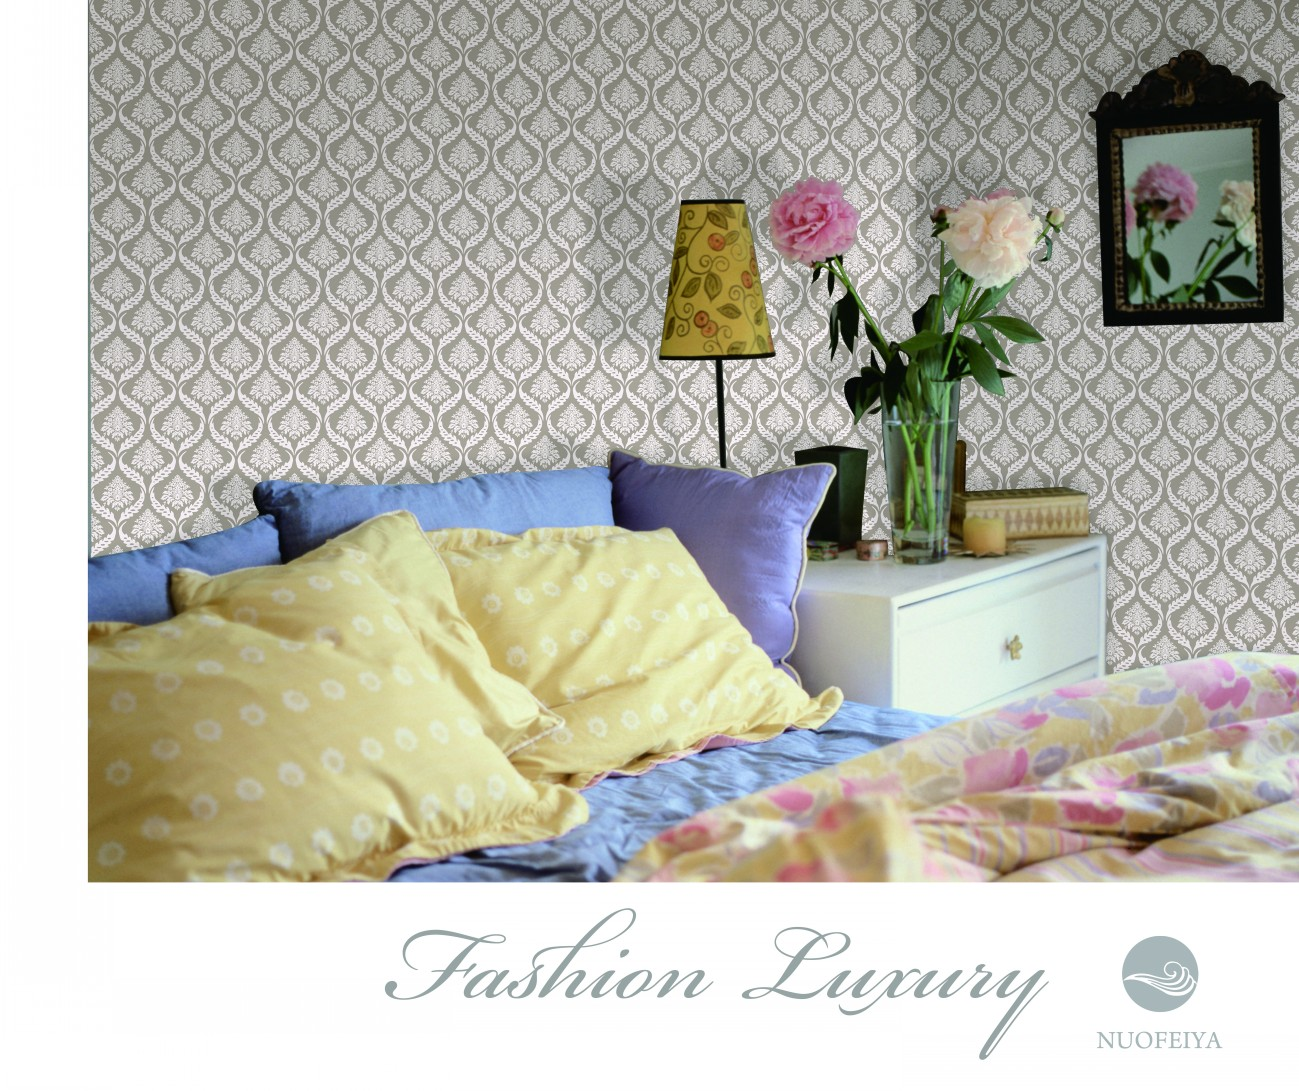 FASHION LUXURY non-woven foaming wallpaper